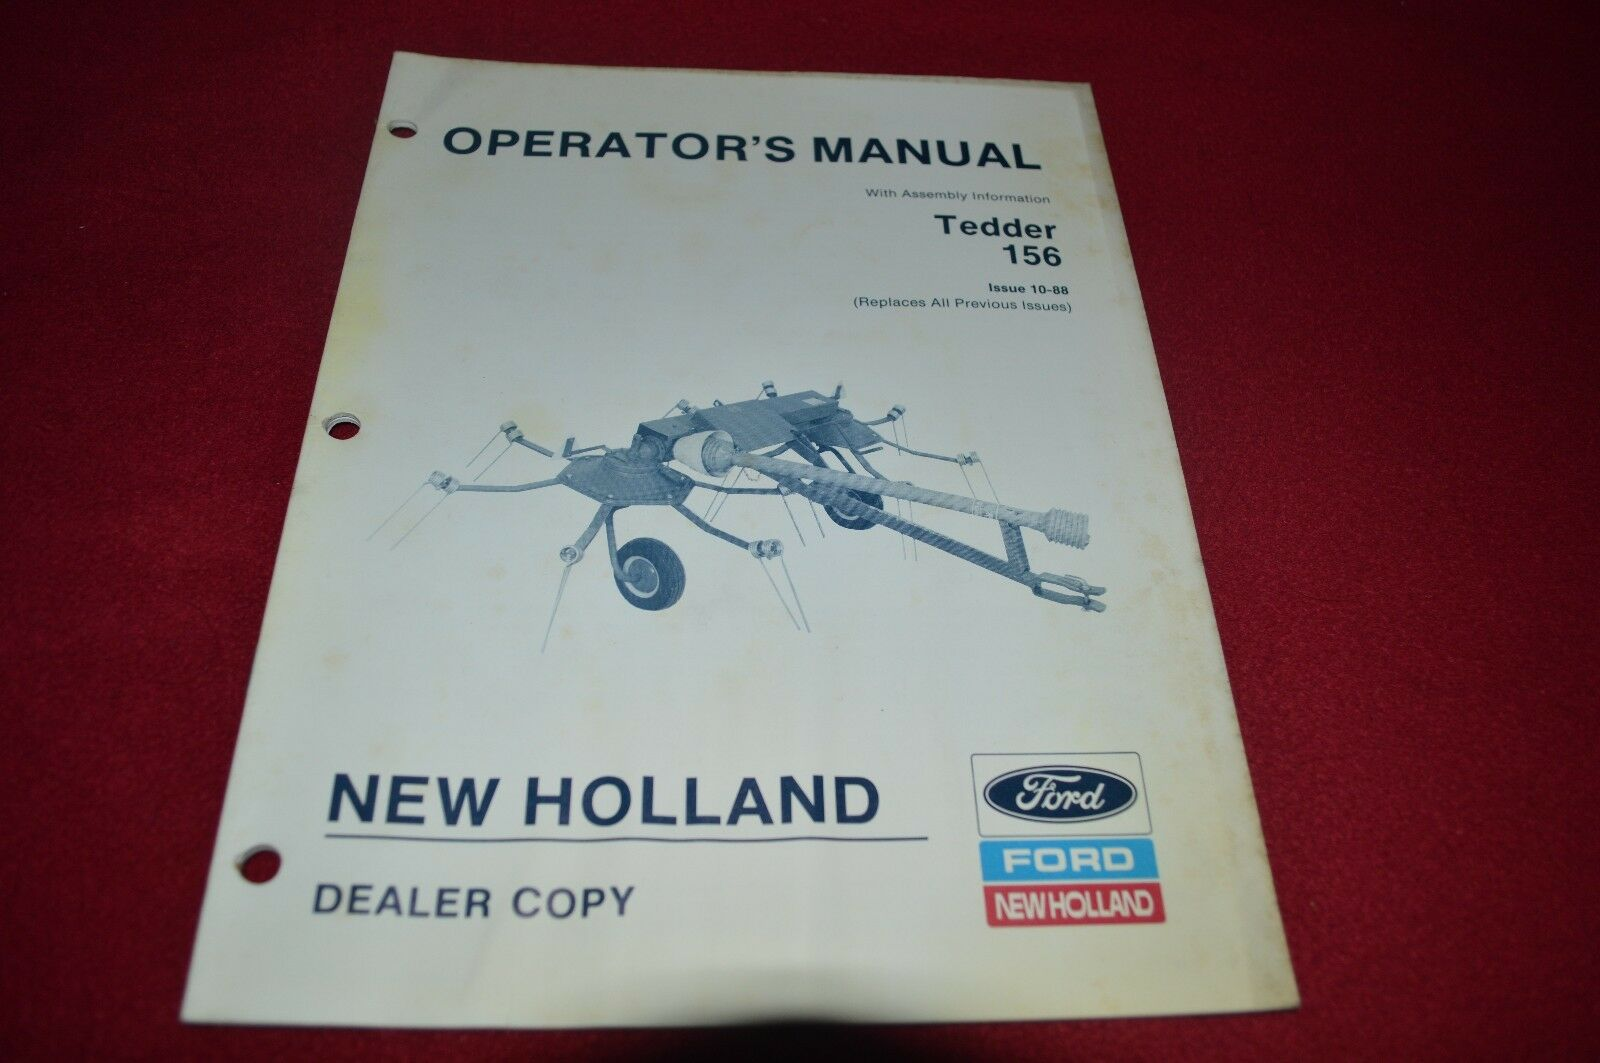 New Holland 156 Tedder Operator's Manual CHPA 1 of 1Only 1 available ...